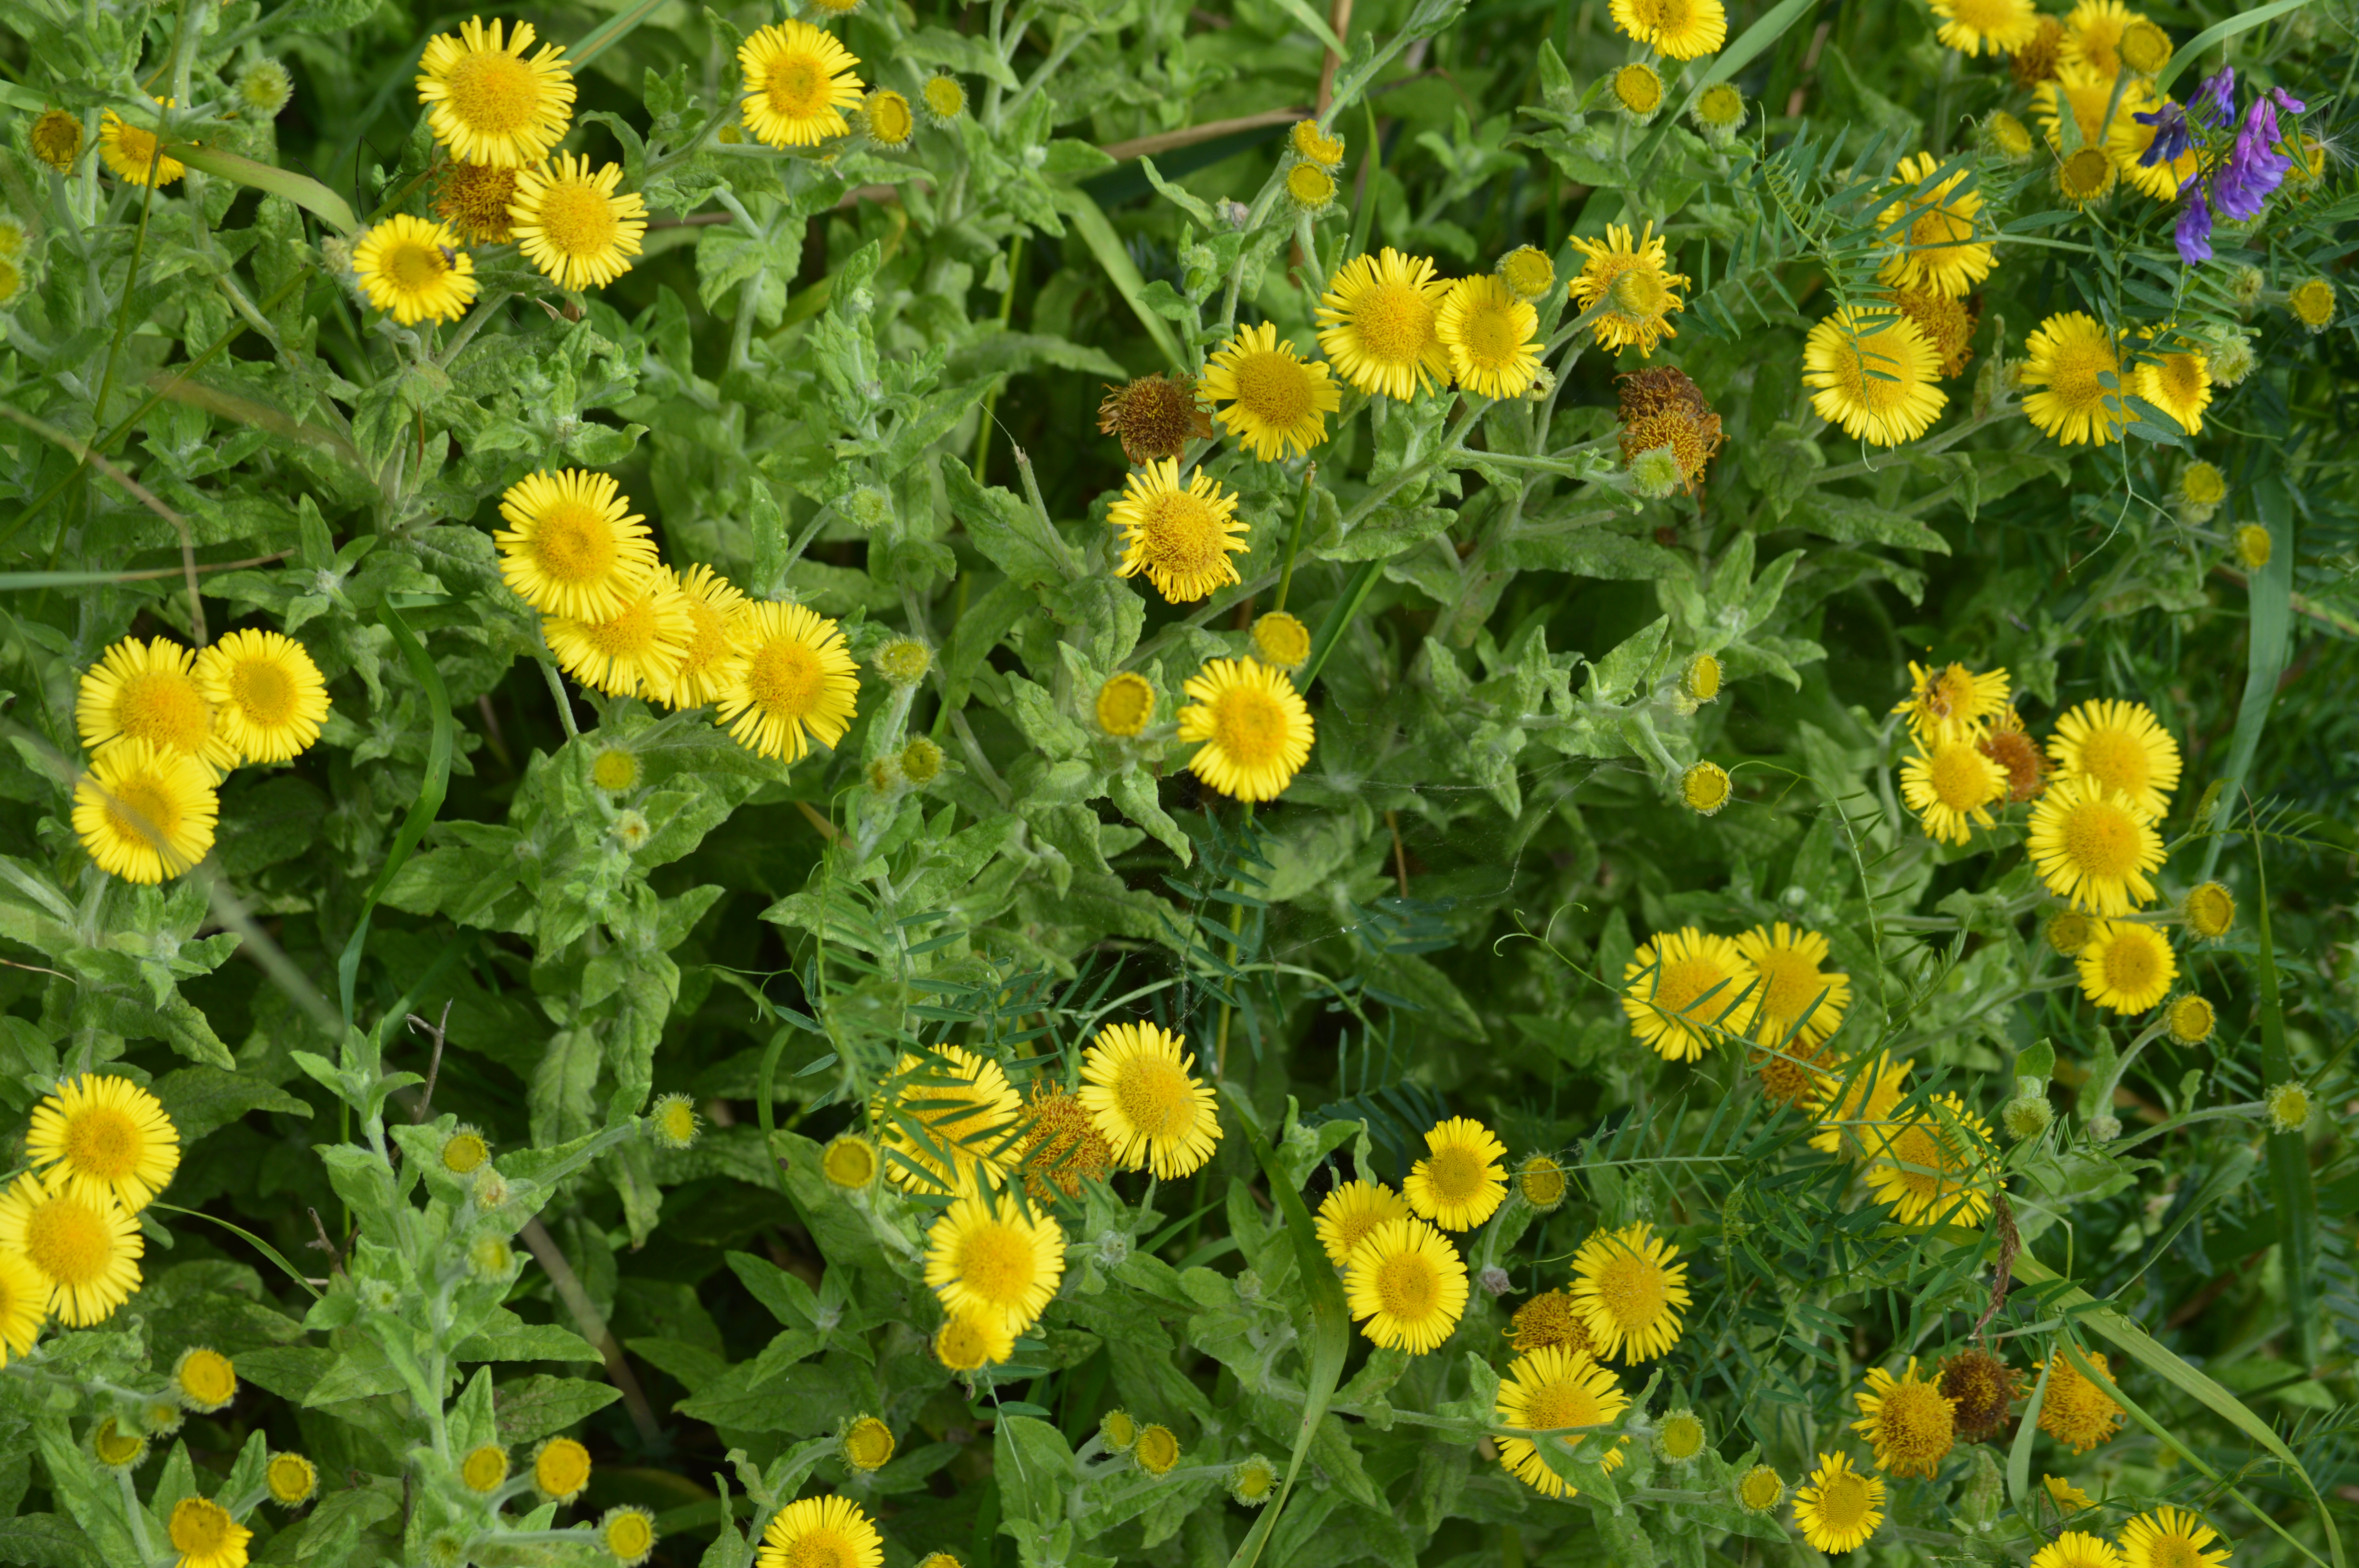 Minsmere the blooming garden pulicaria dysenterica or fleabane was used as its name suggests to keep fleas away i love its little yellow daisy flowers mightylinksfo